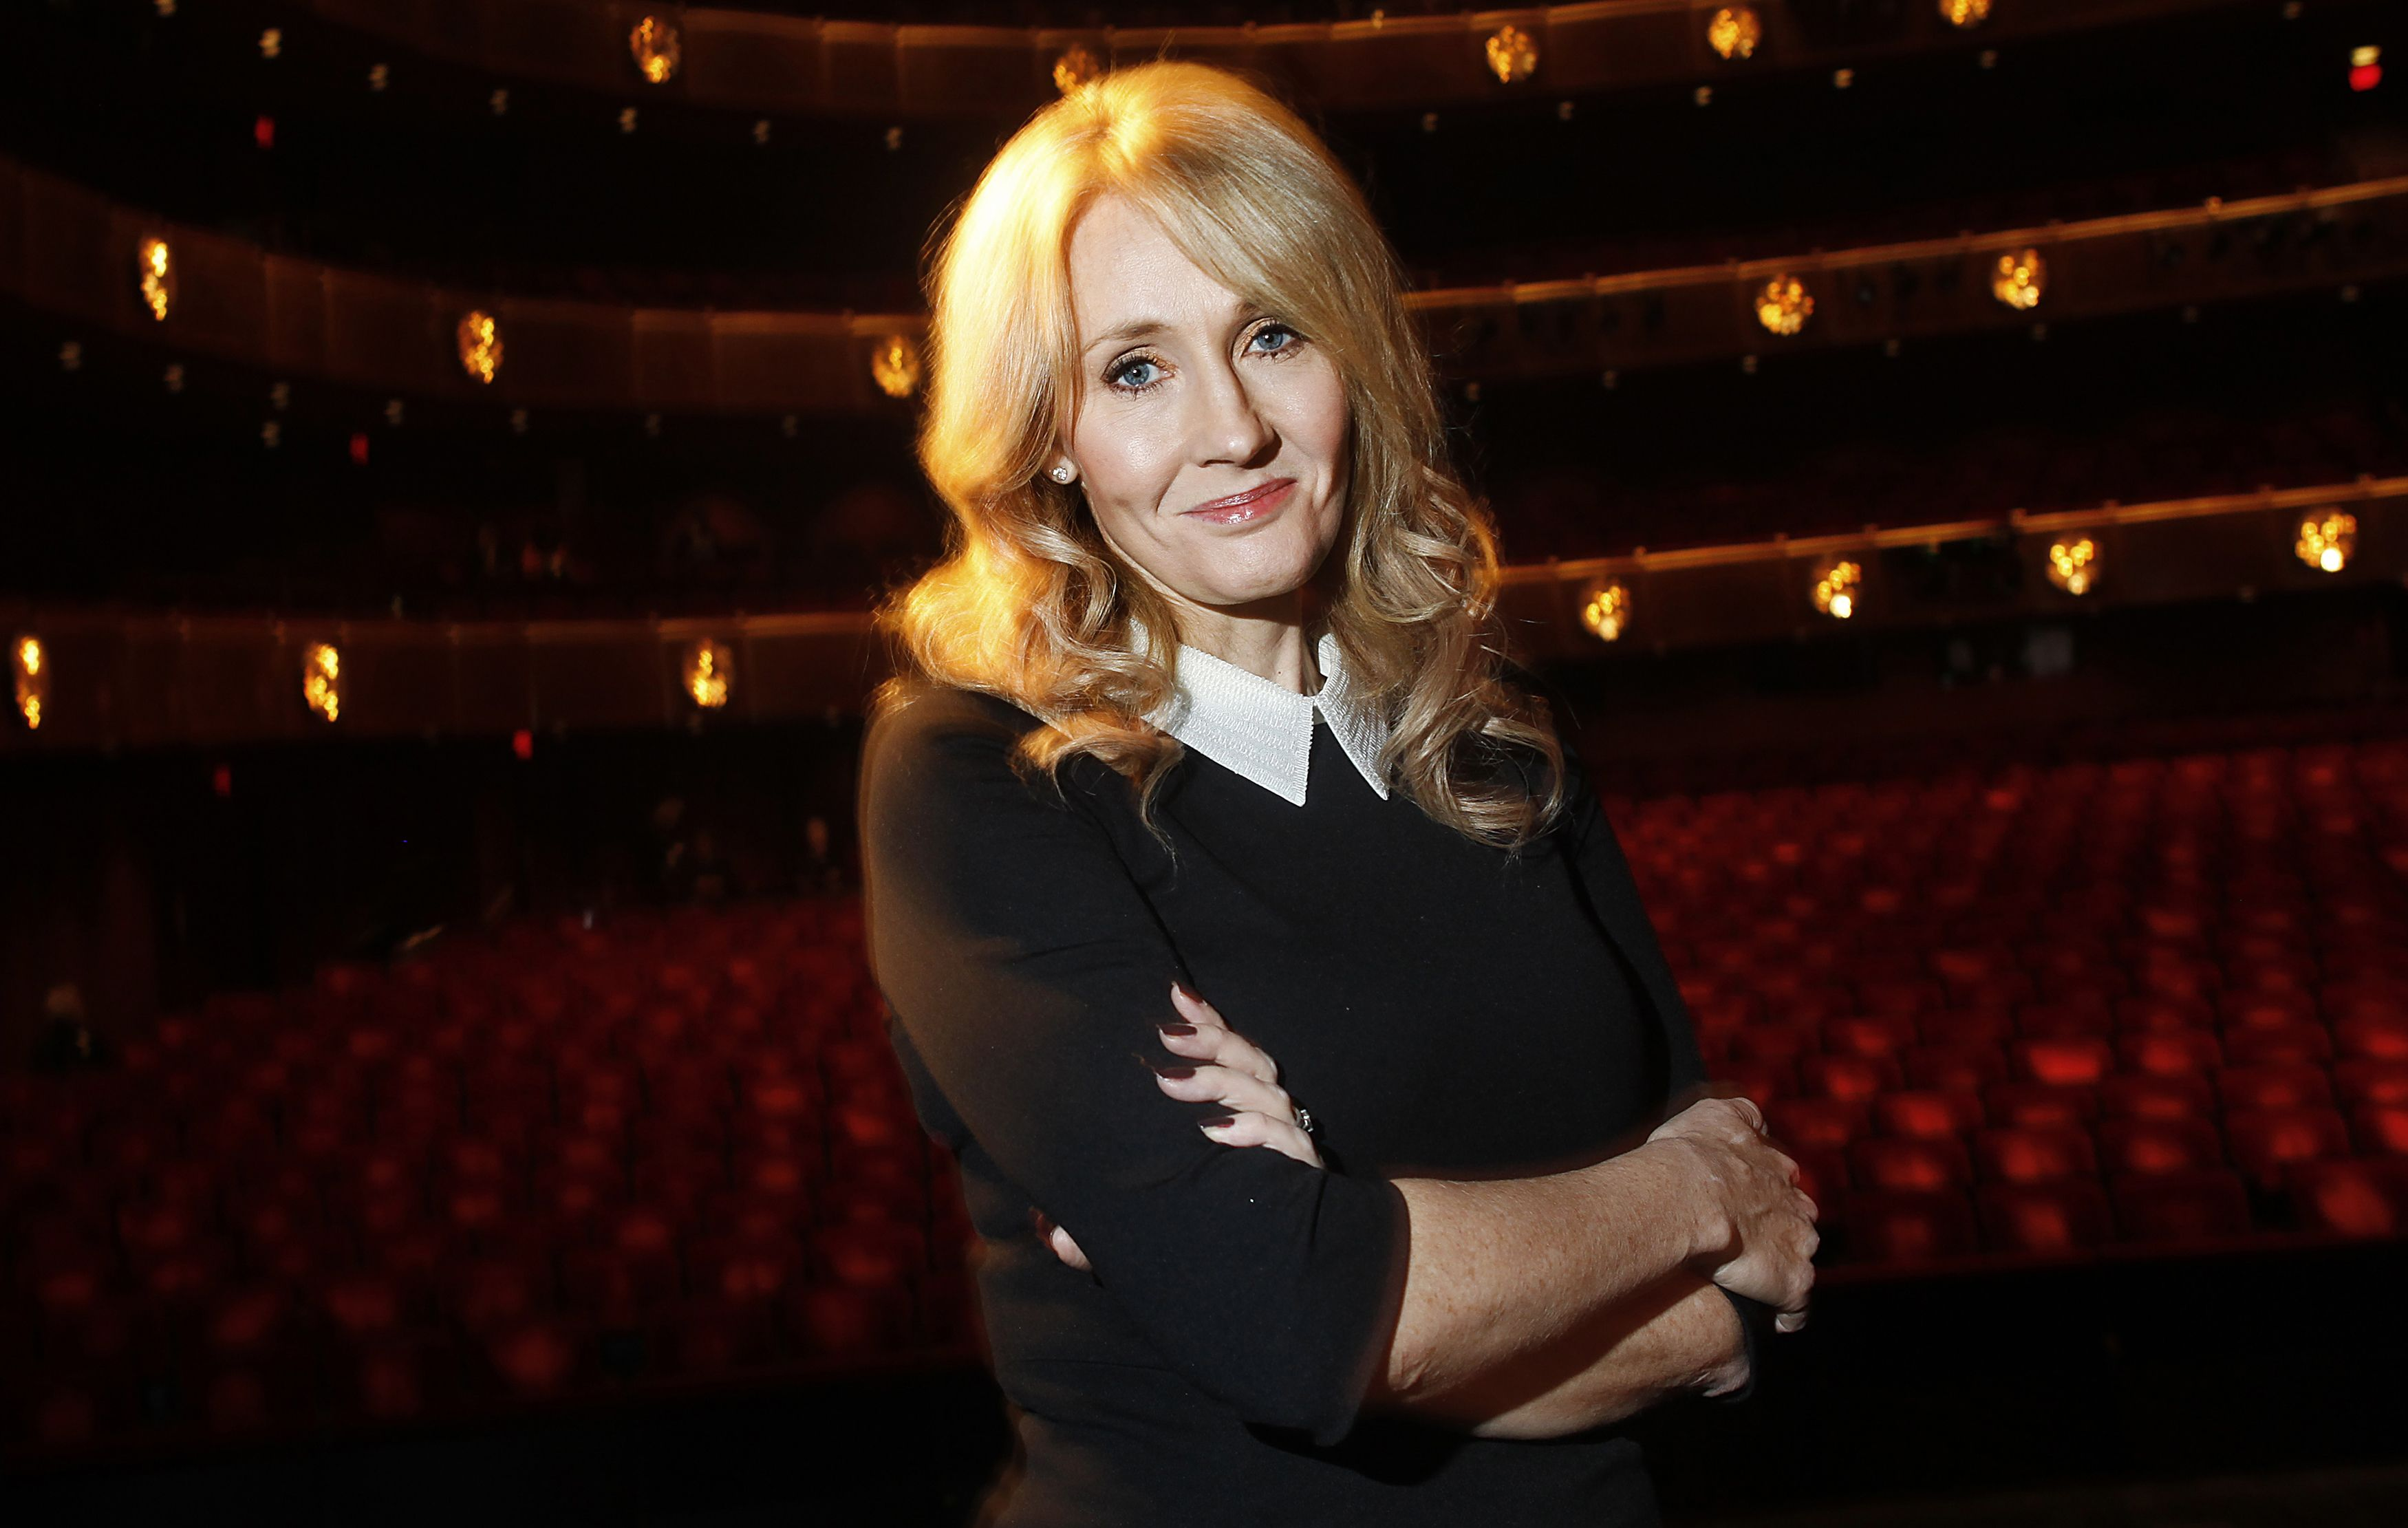 Jk Rowling Brings Magic To The Theater With A New Harry Potter